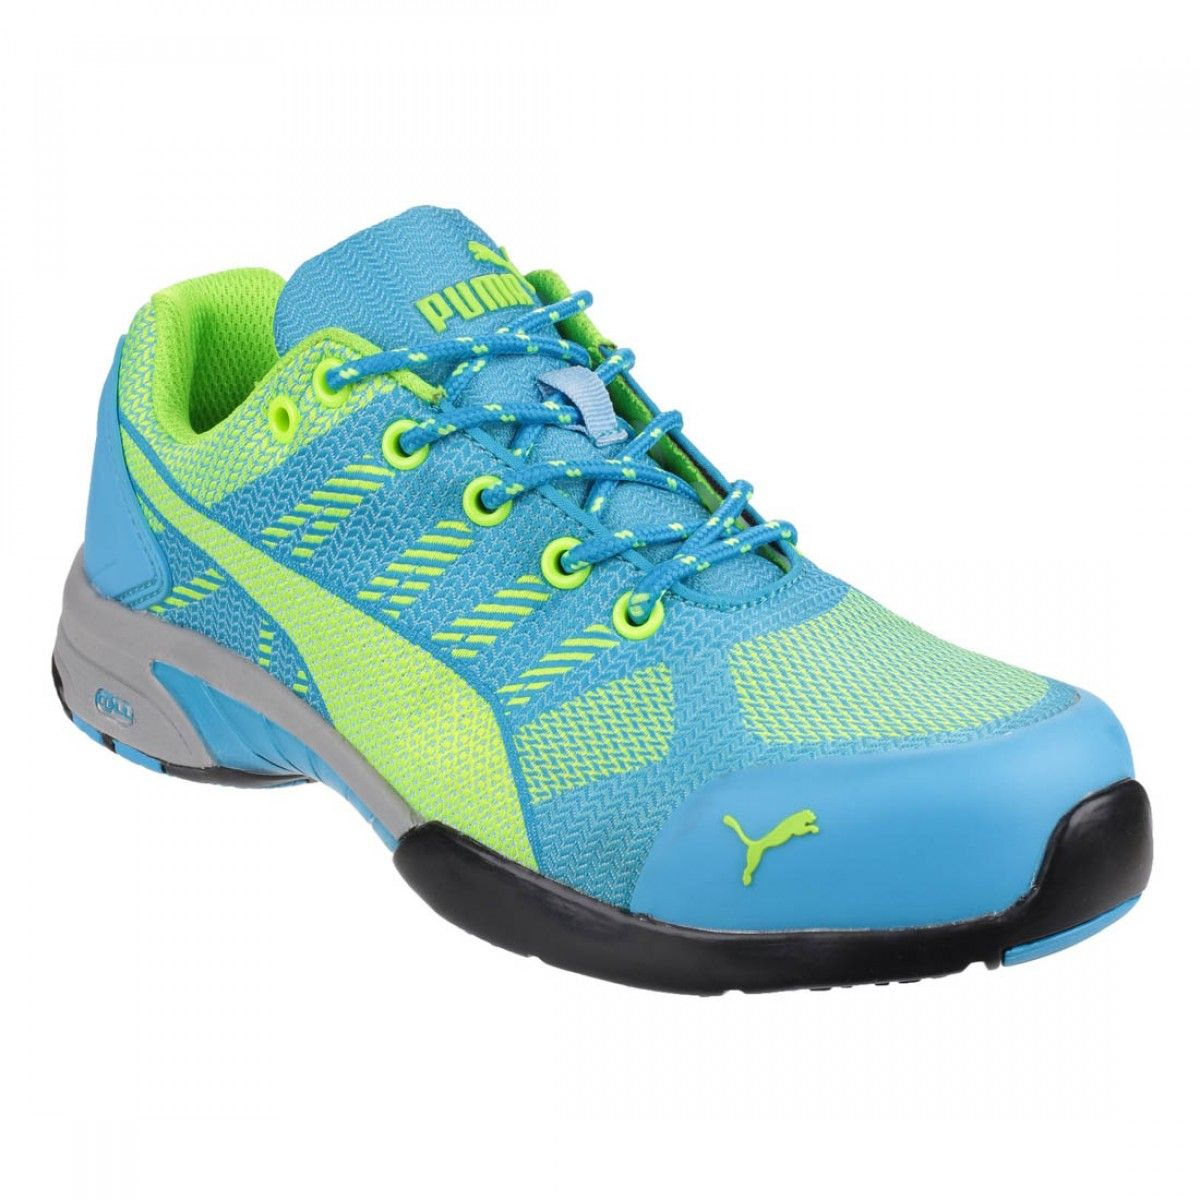 Puma Safety Celerity Knit Blue and Lime Ladies Safety